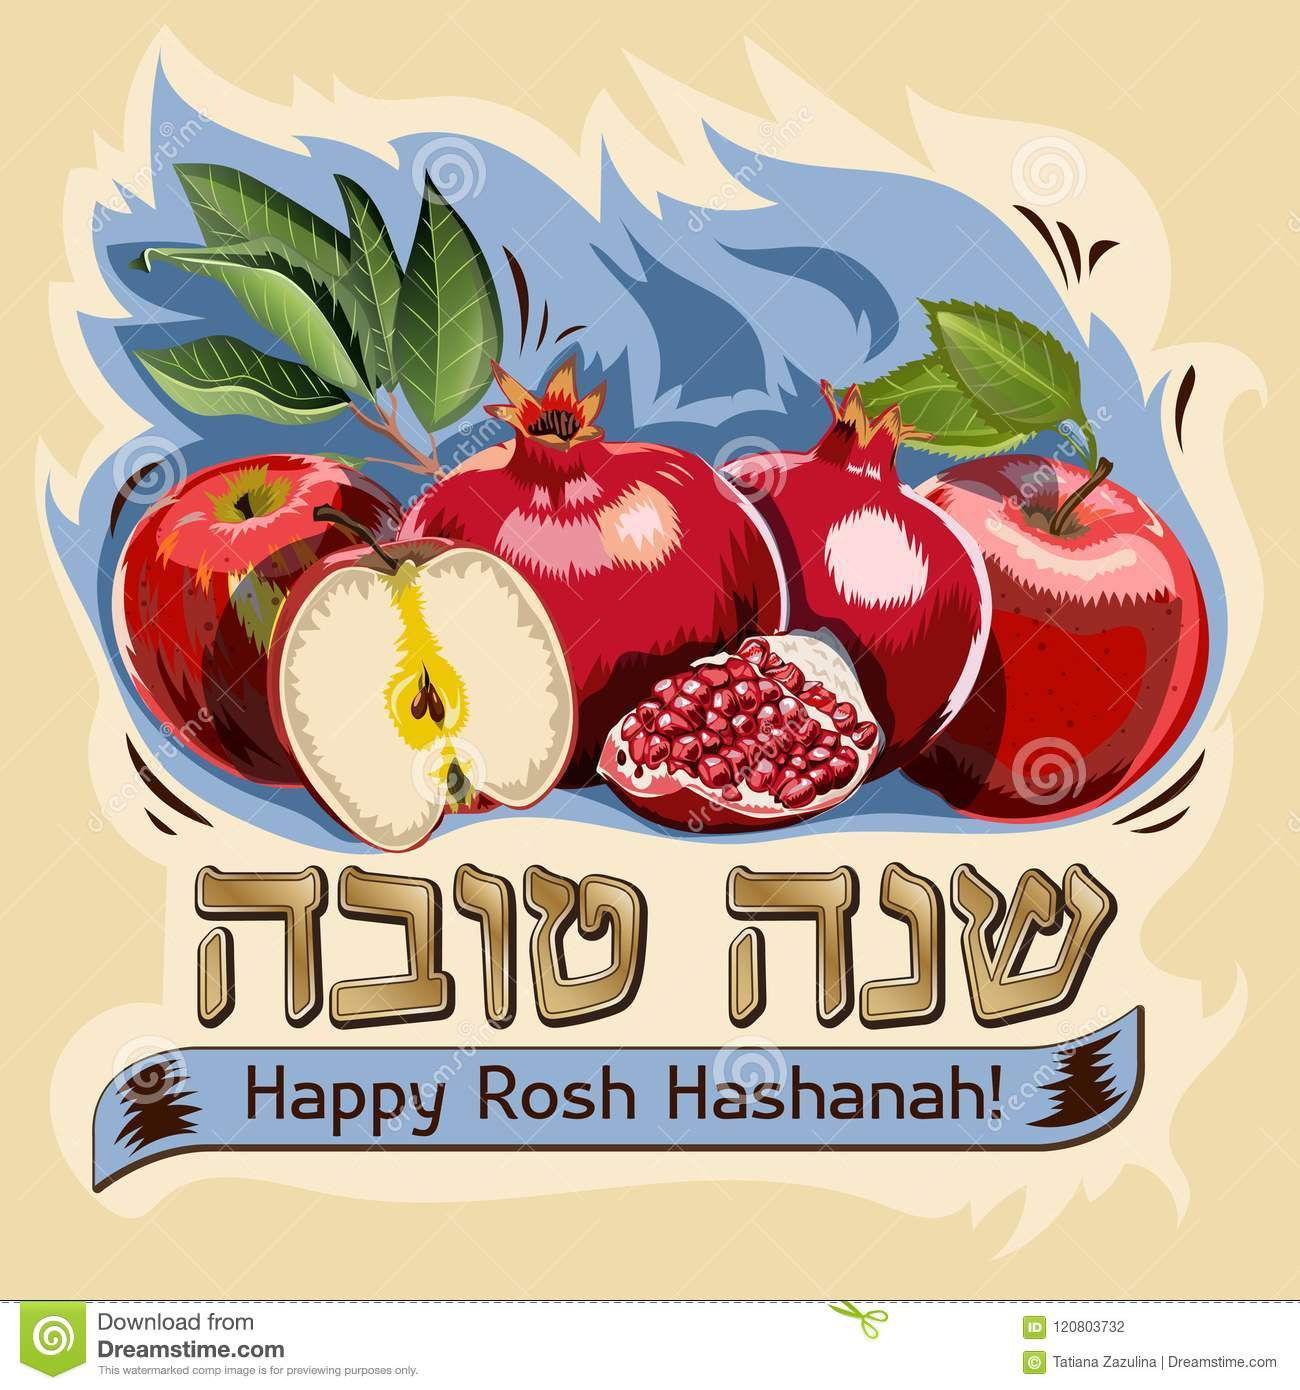 Greeting Card With Pomegranate For Jewish New Year Rosh Hashanah